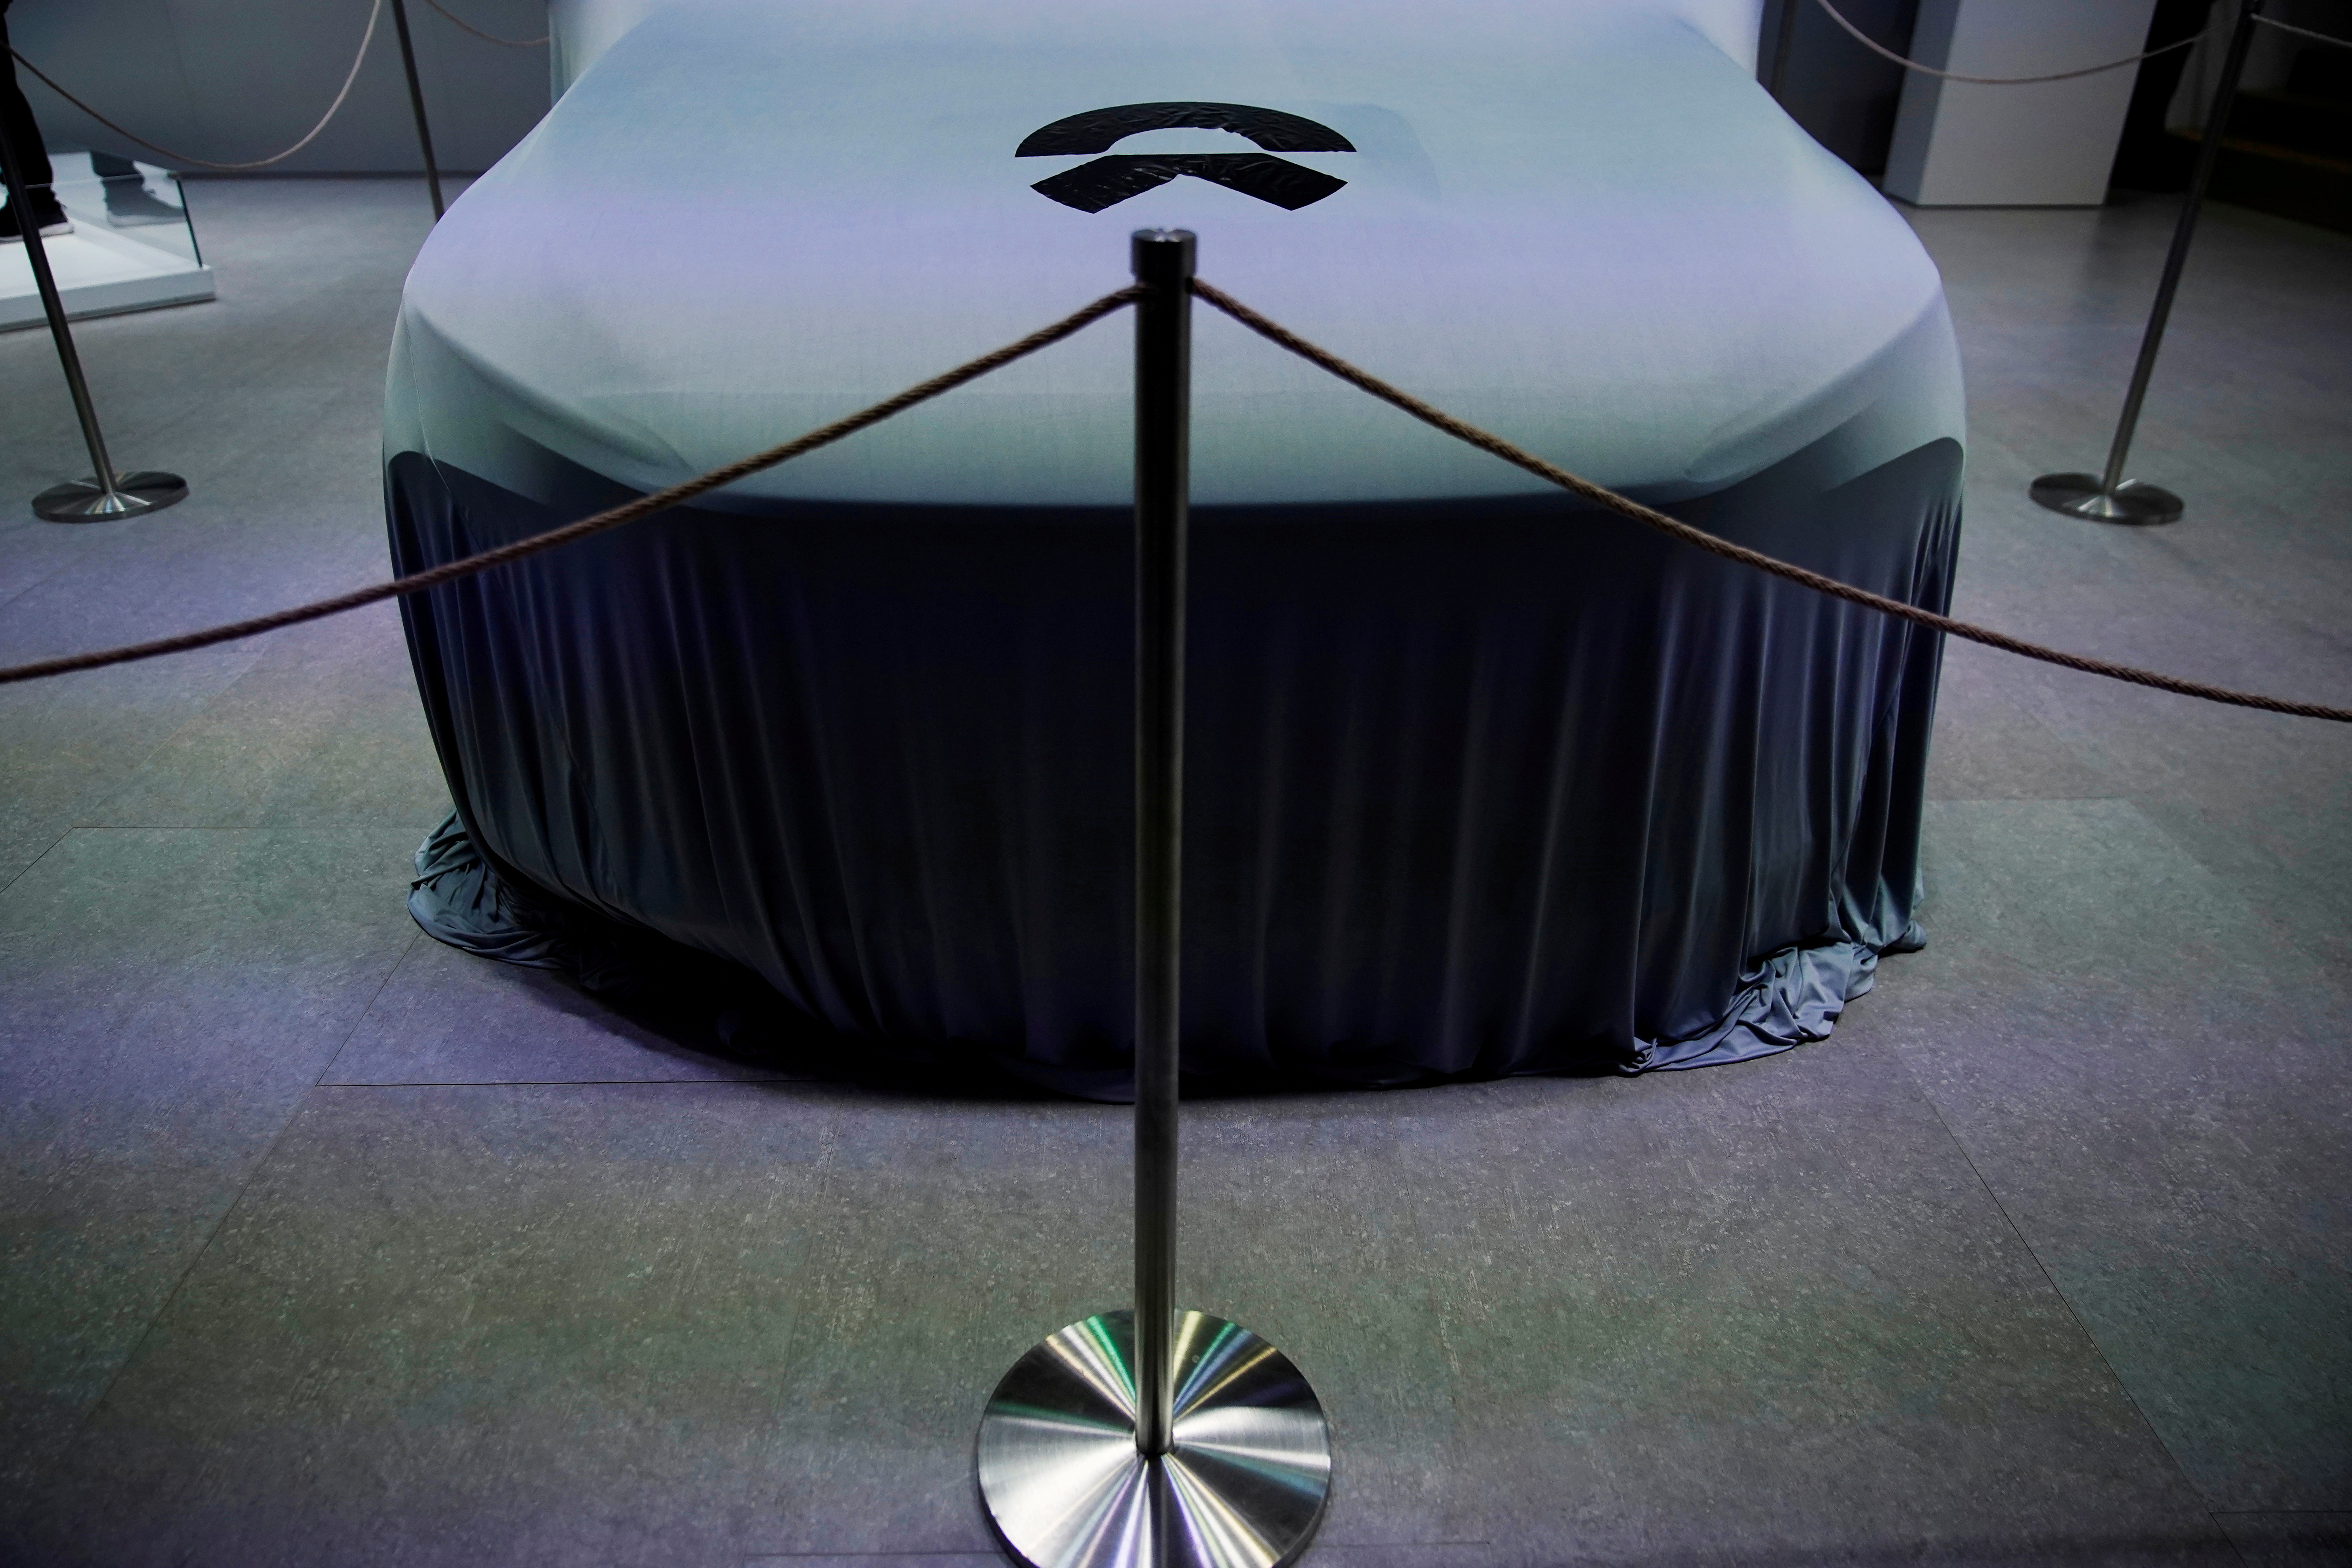 The Nio logo is seen on a cover during a media day for the Auto Shanghai show in Shanghai, China April 19, 2021. REUTERS/Aly Song/File Photo